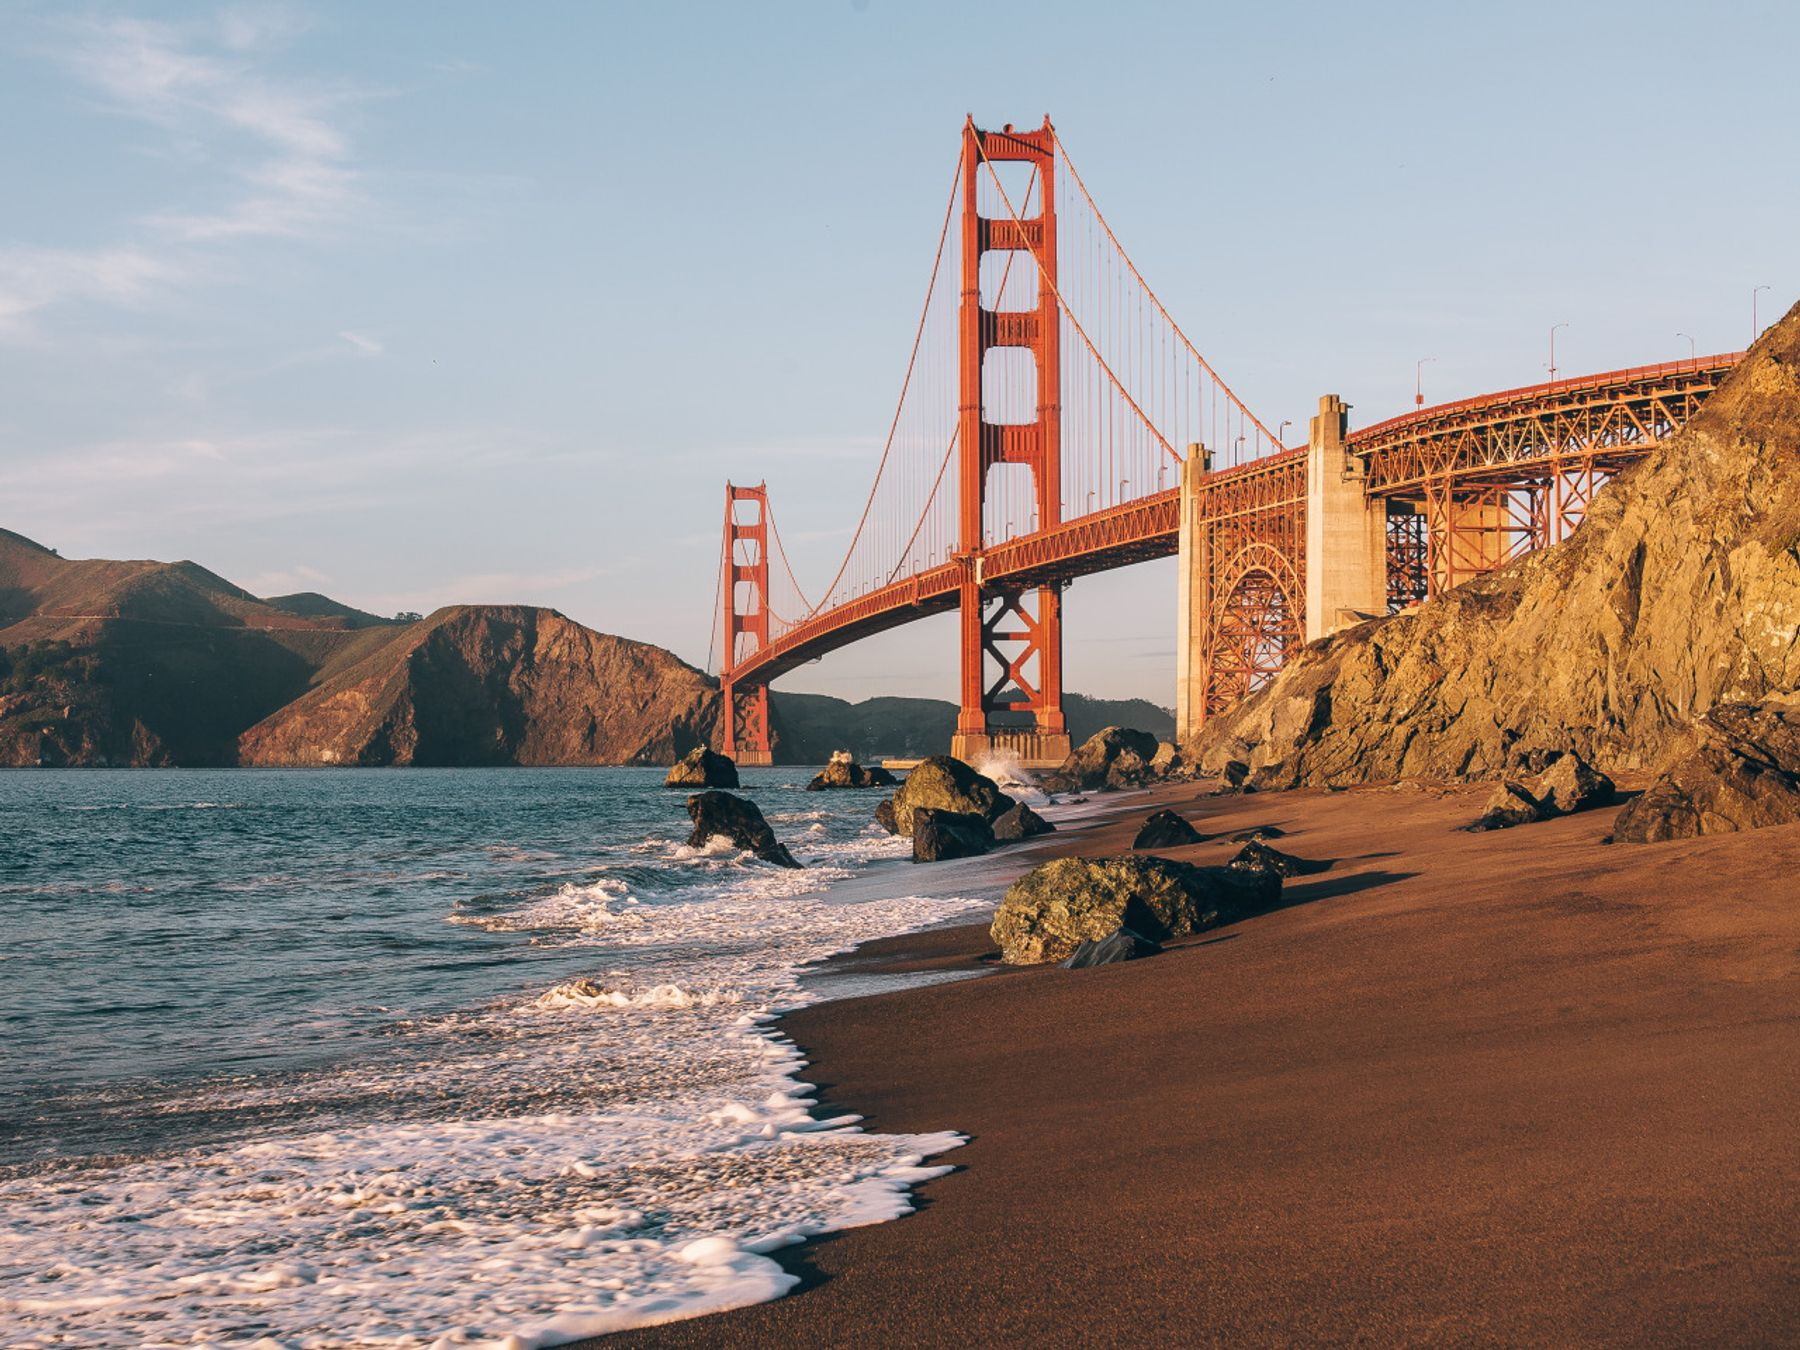 The National Parks Pass secures access to the Golden Gate National Recreation Area pictured here.